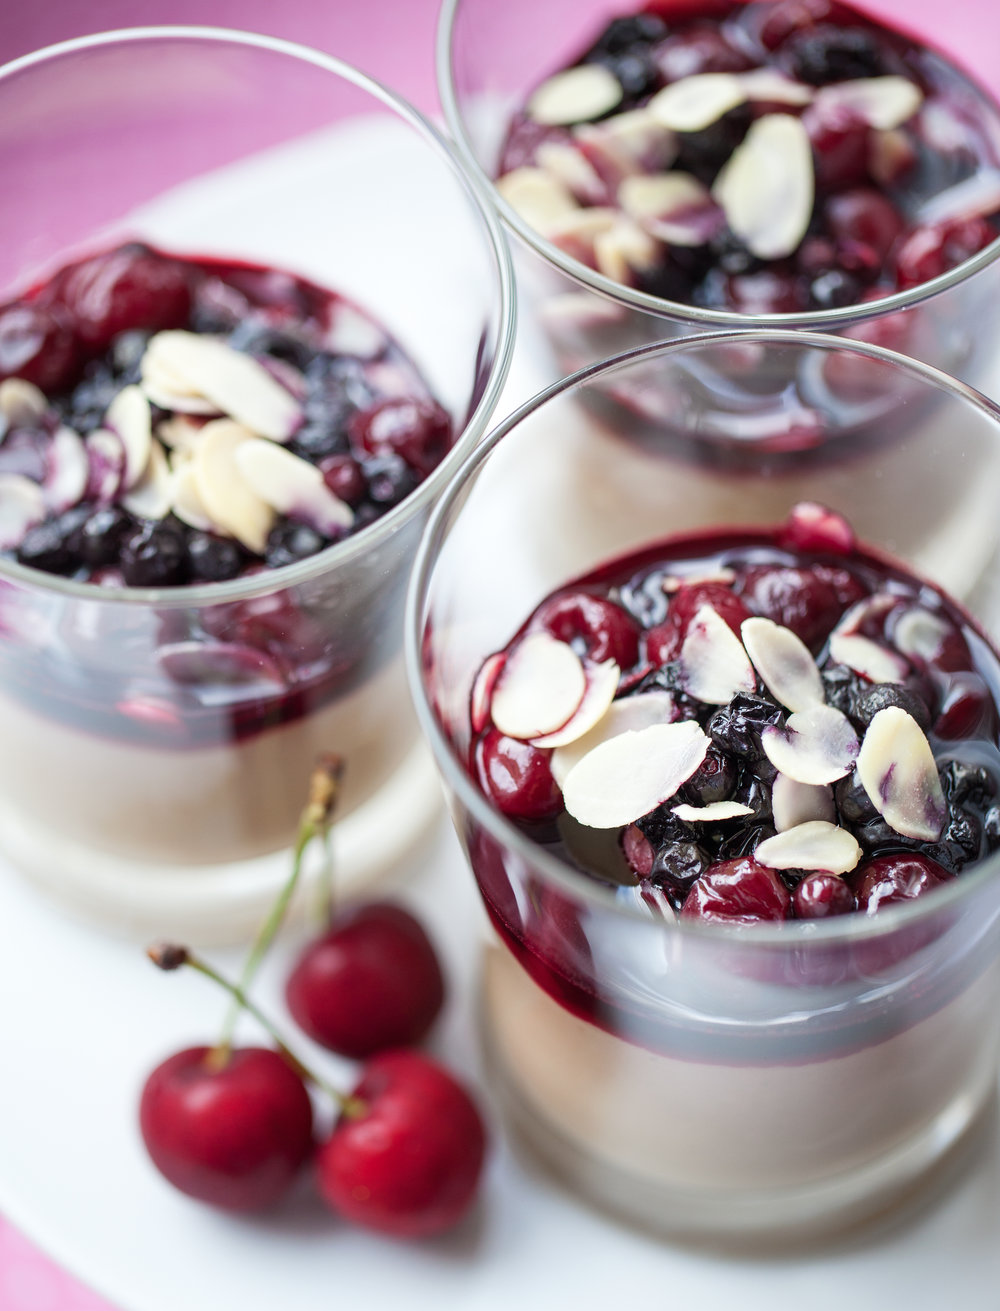 Vegan rice pudding with cherries and almond flakes